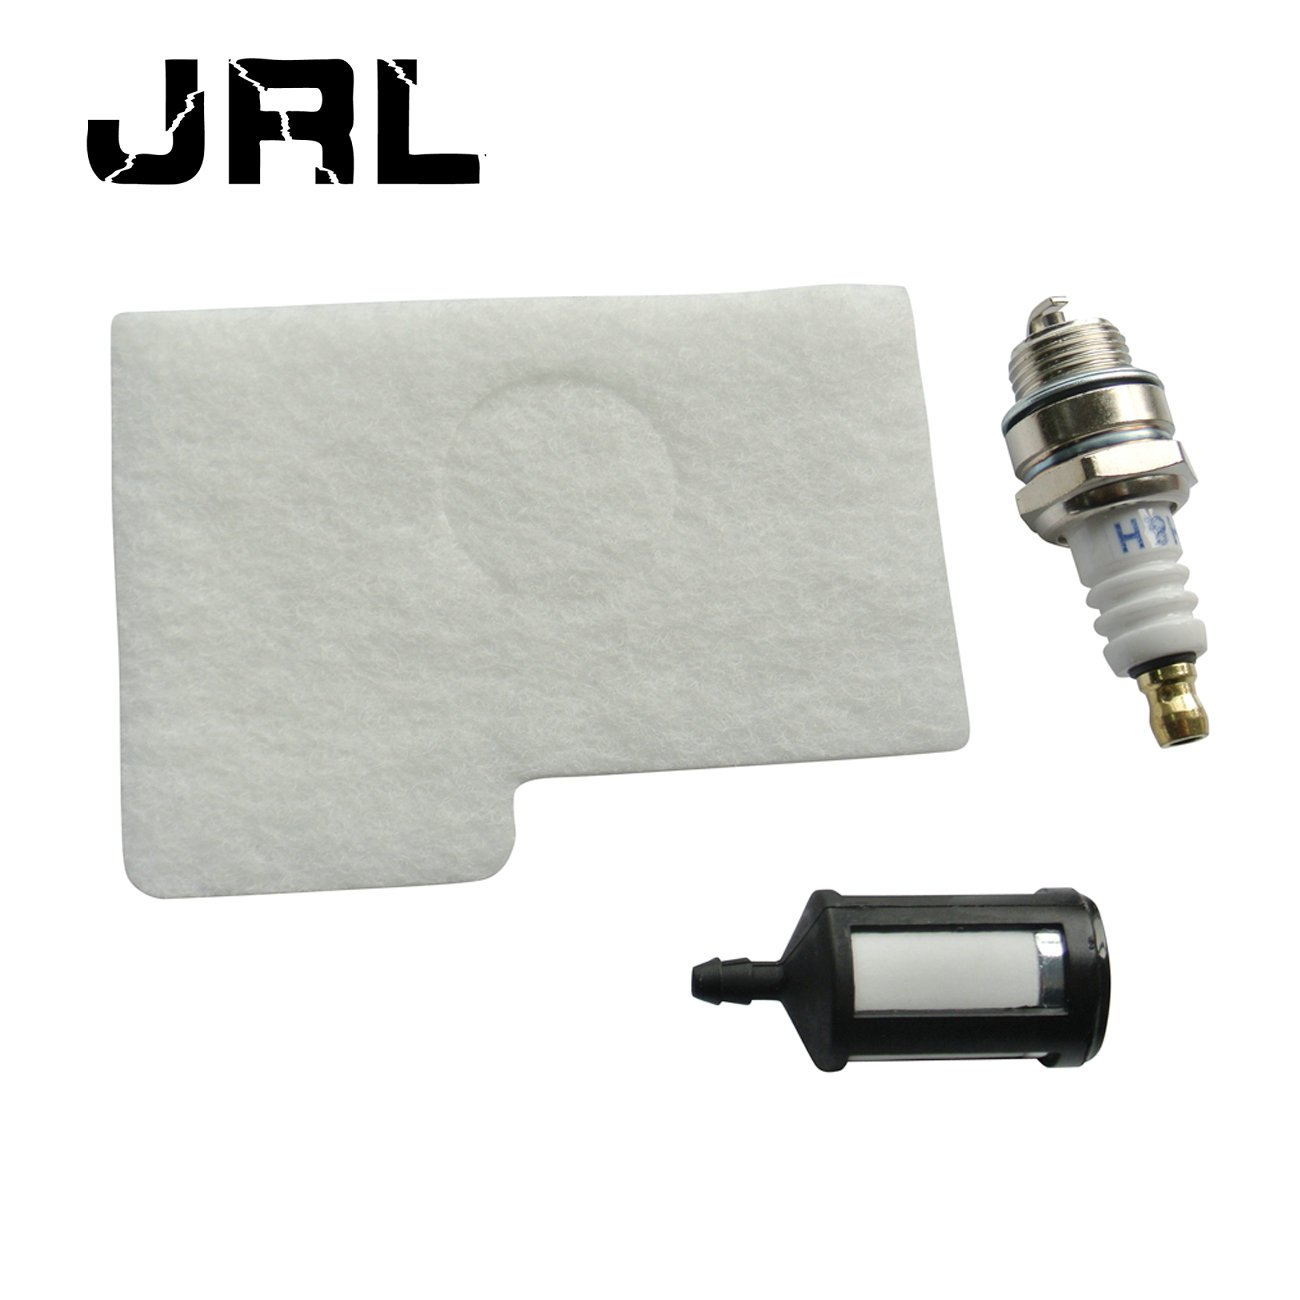 JRL 3PCS AIR Filter Service KIT FITS STIHL 017 018 MS170 MS180 Kanglai Machinery